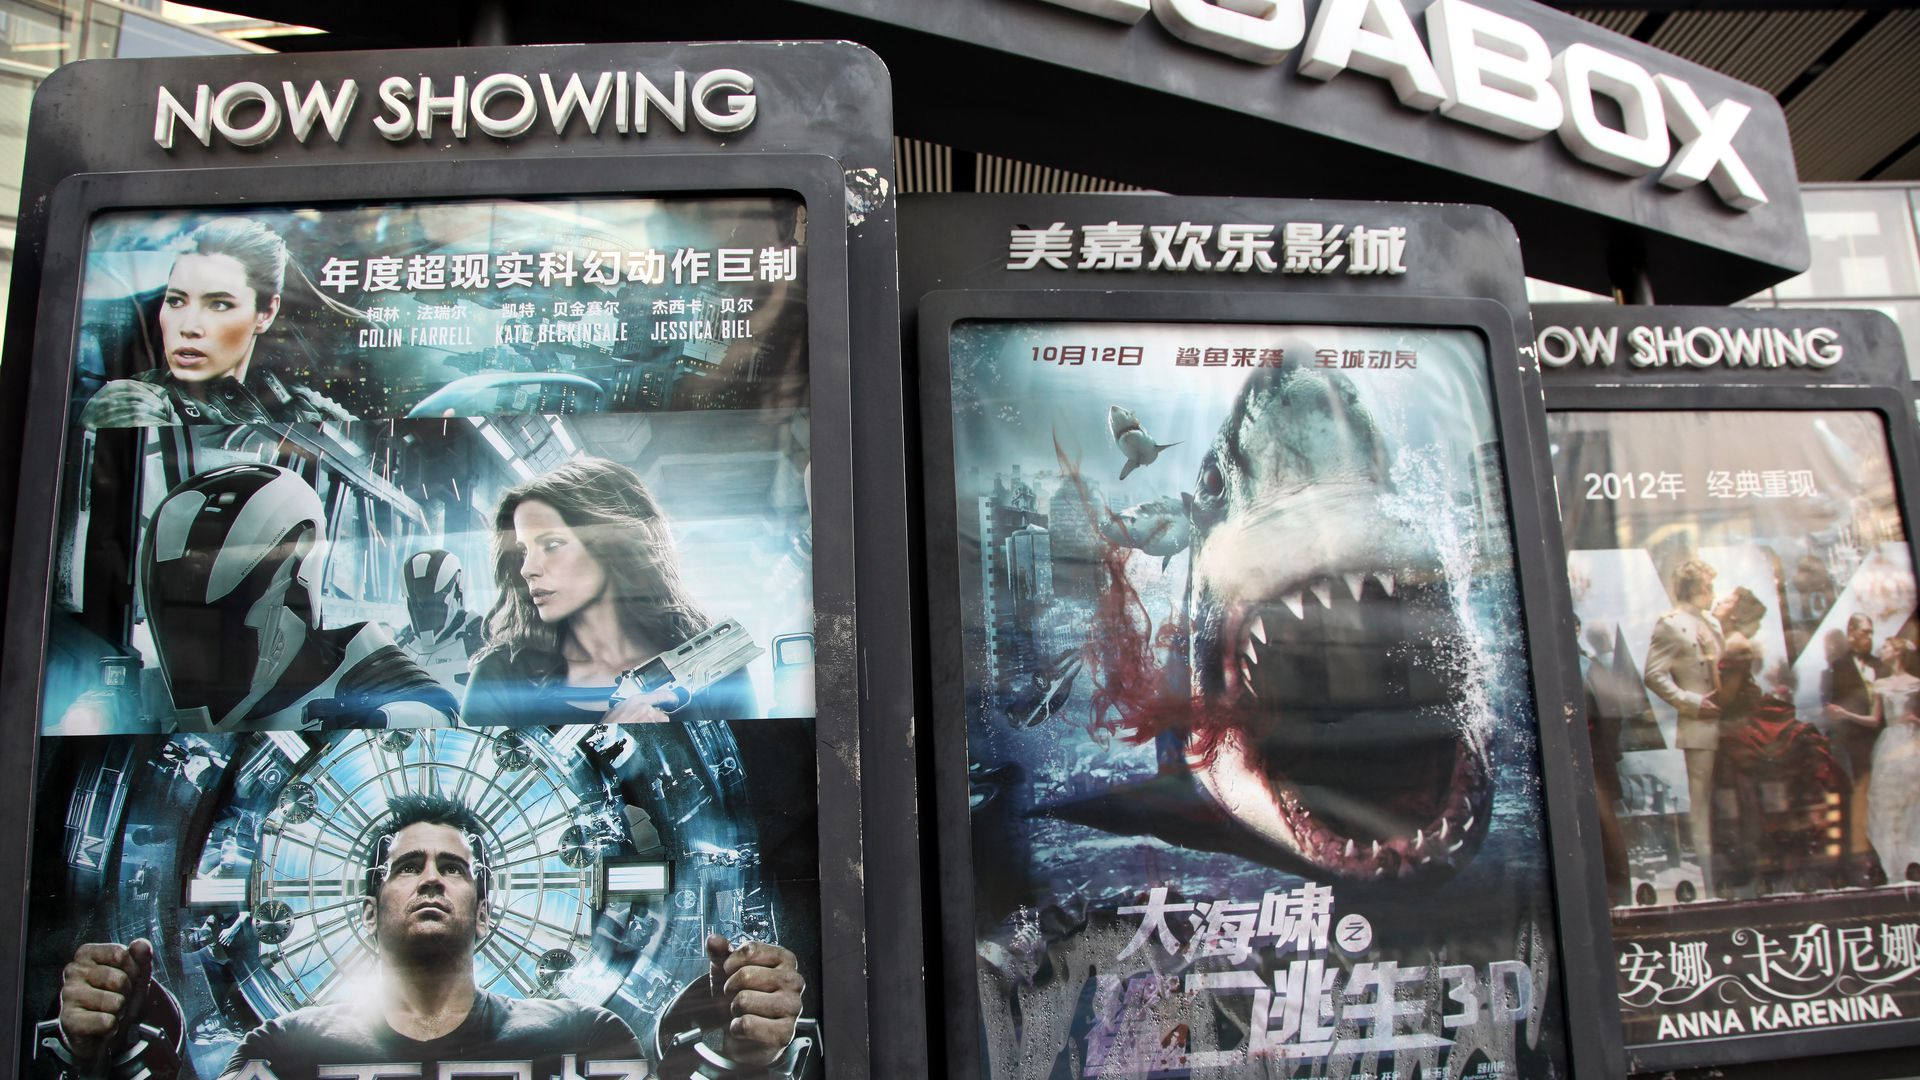 This image shows a row of  billboards in China showing movie posters with Chinese characters for American movies.